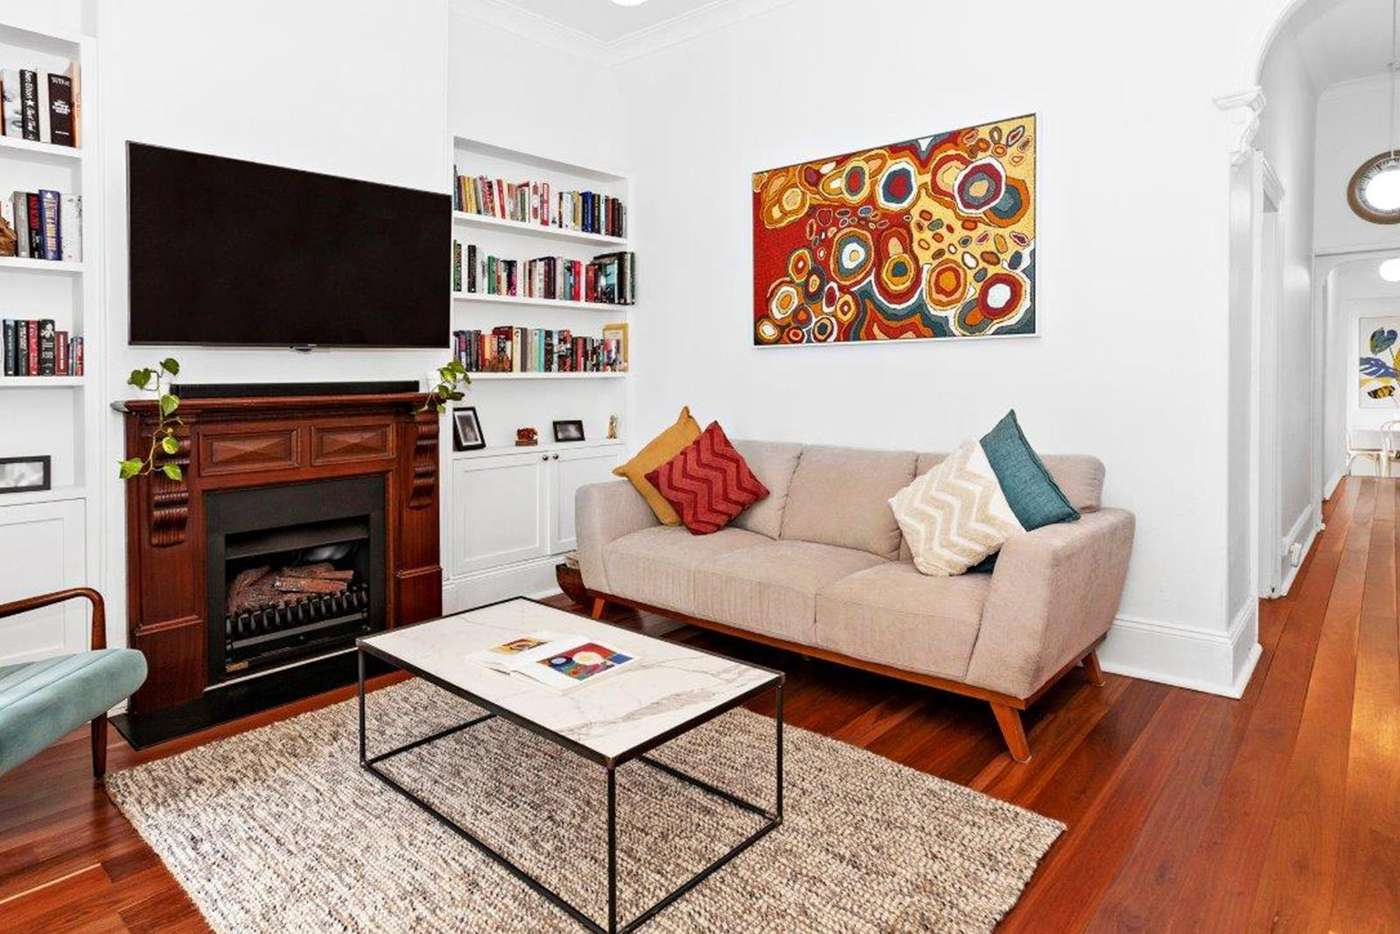 Main view of Homely house listing, 15 Mullens Street, Balmain NSW 2041